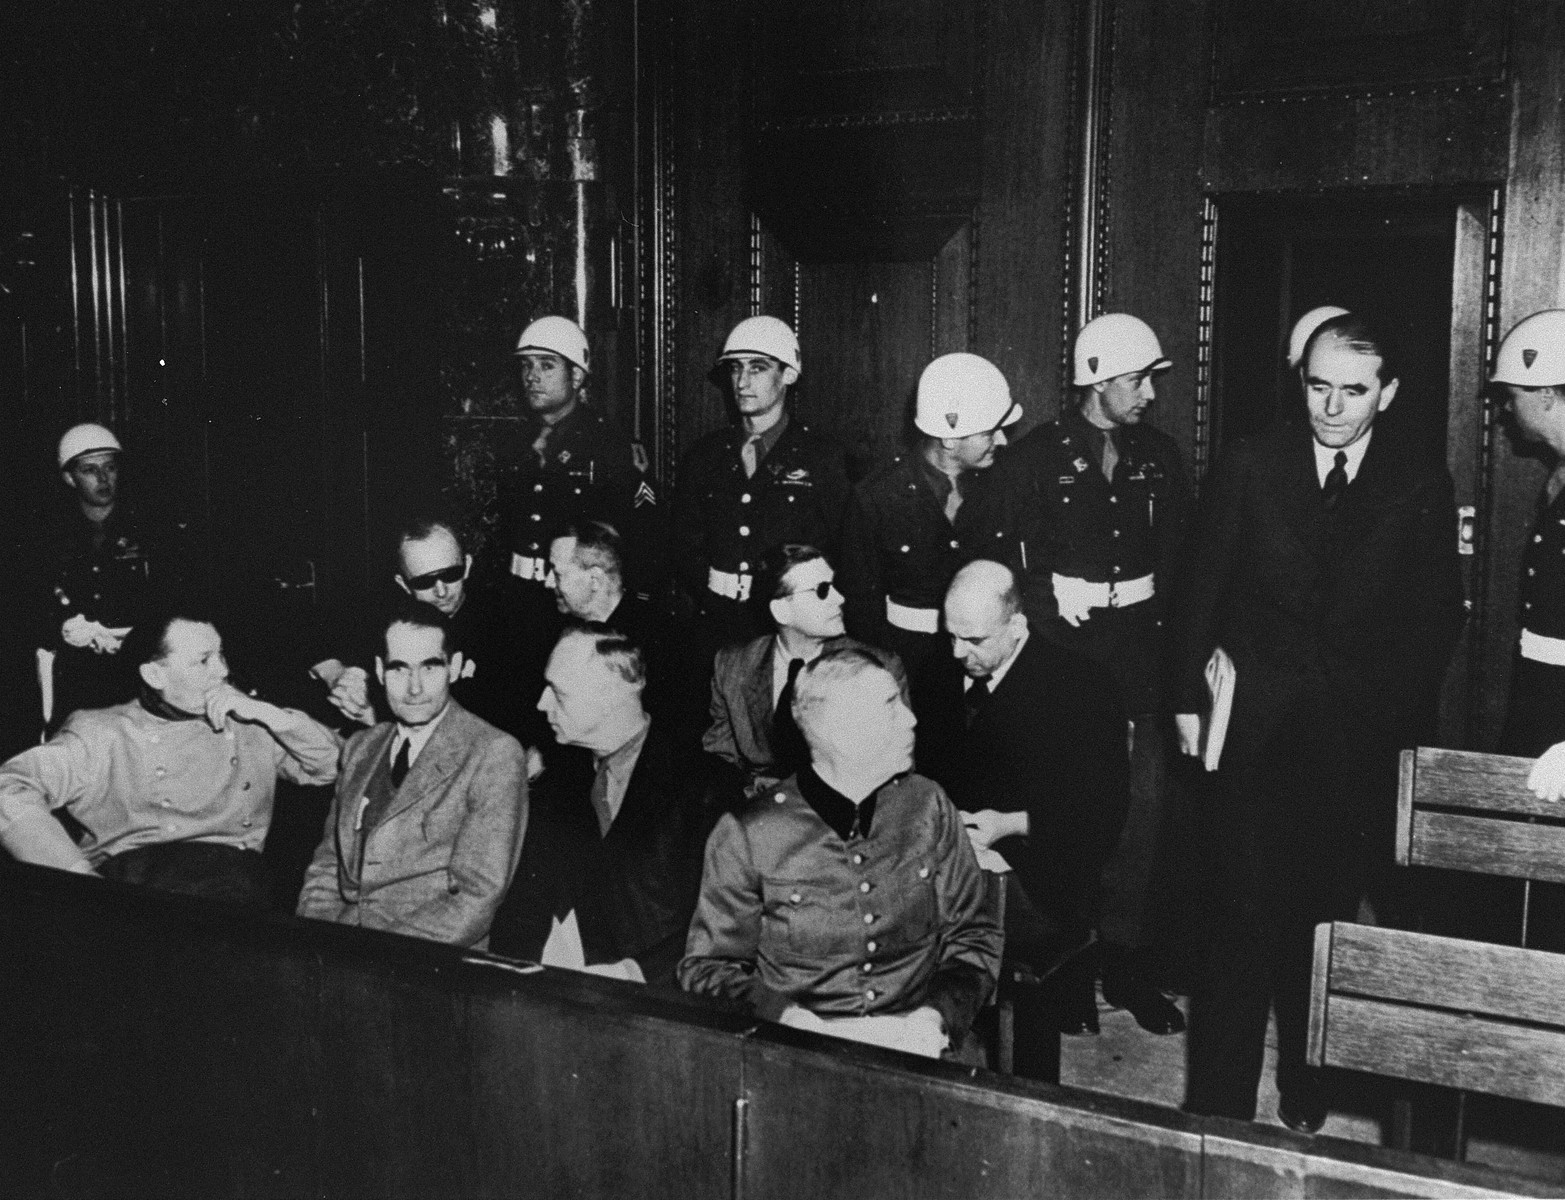 The defendants are led into the dock at the International Military Tribunal trial of war criminals at Nuremberg.  Pictured in the front row from left to right are: Hermann Goering, Rudolf Hess, Joachim von Ribbentrop and Wilhelm Keitel.  In the second row from left to right are: Karl Doenitz, Erich Raeder, Baldur von Schirach and Fritz Sauckel.